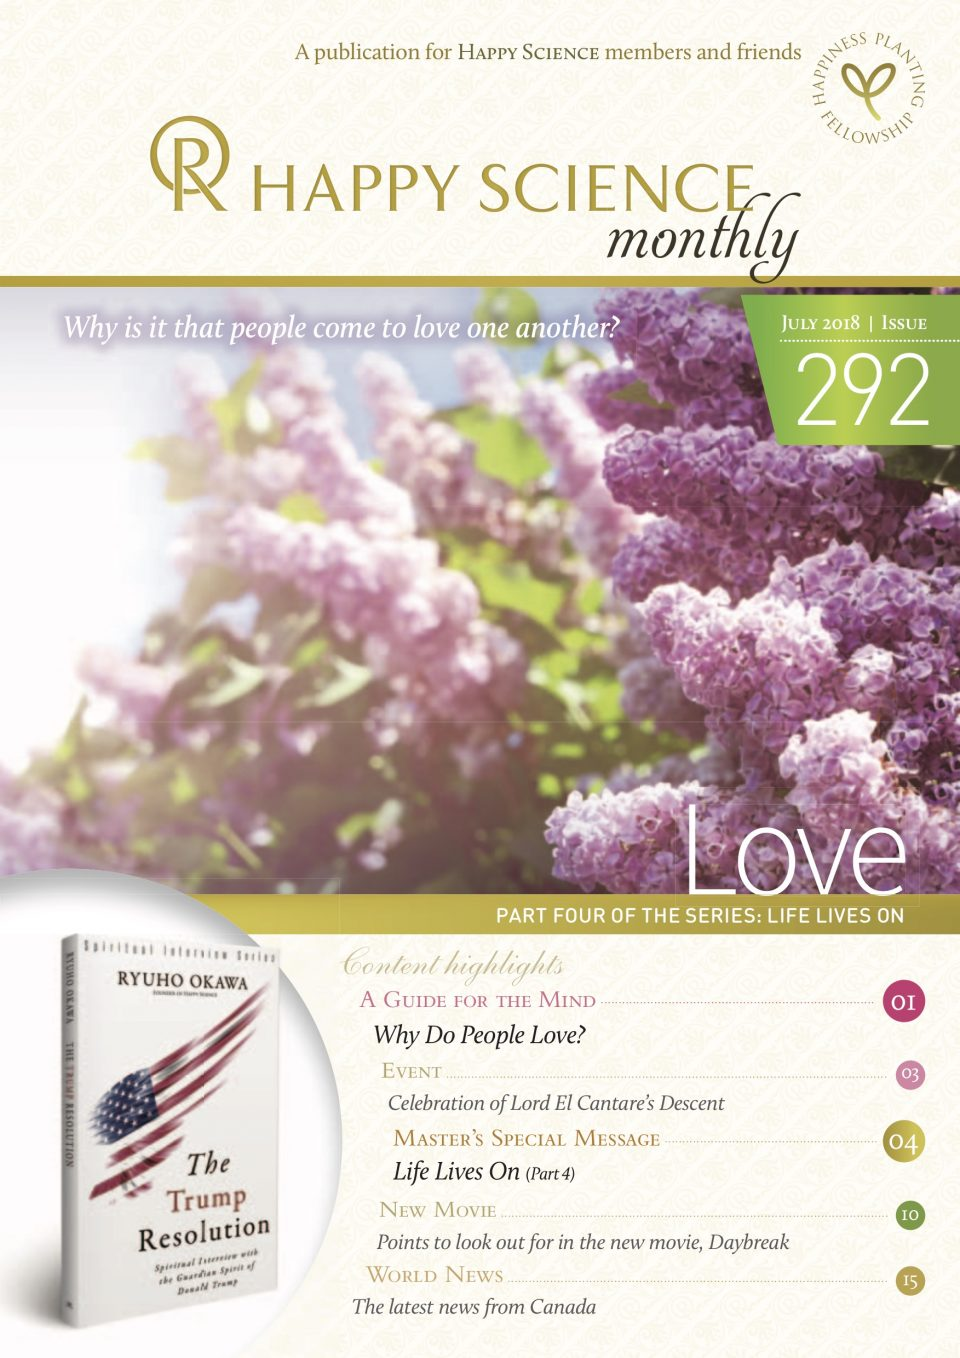 HAPPY SCIENCE Monthly 292 is released!